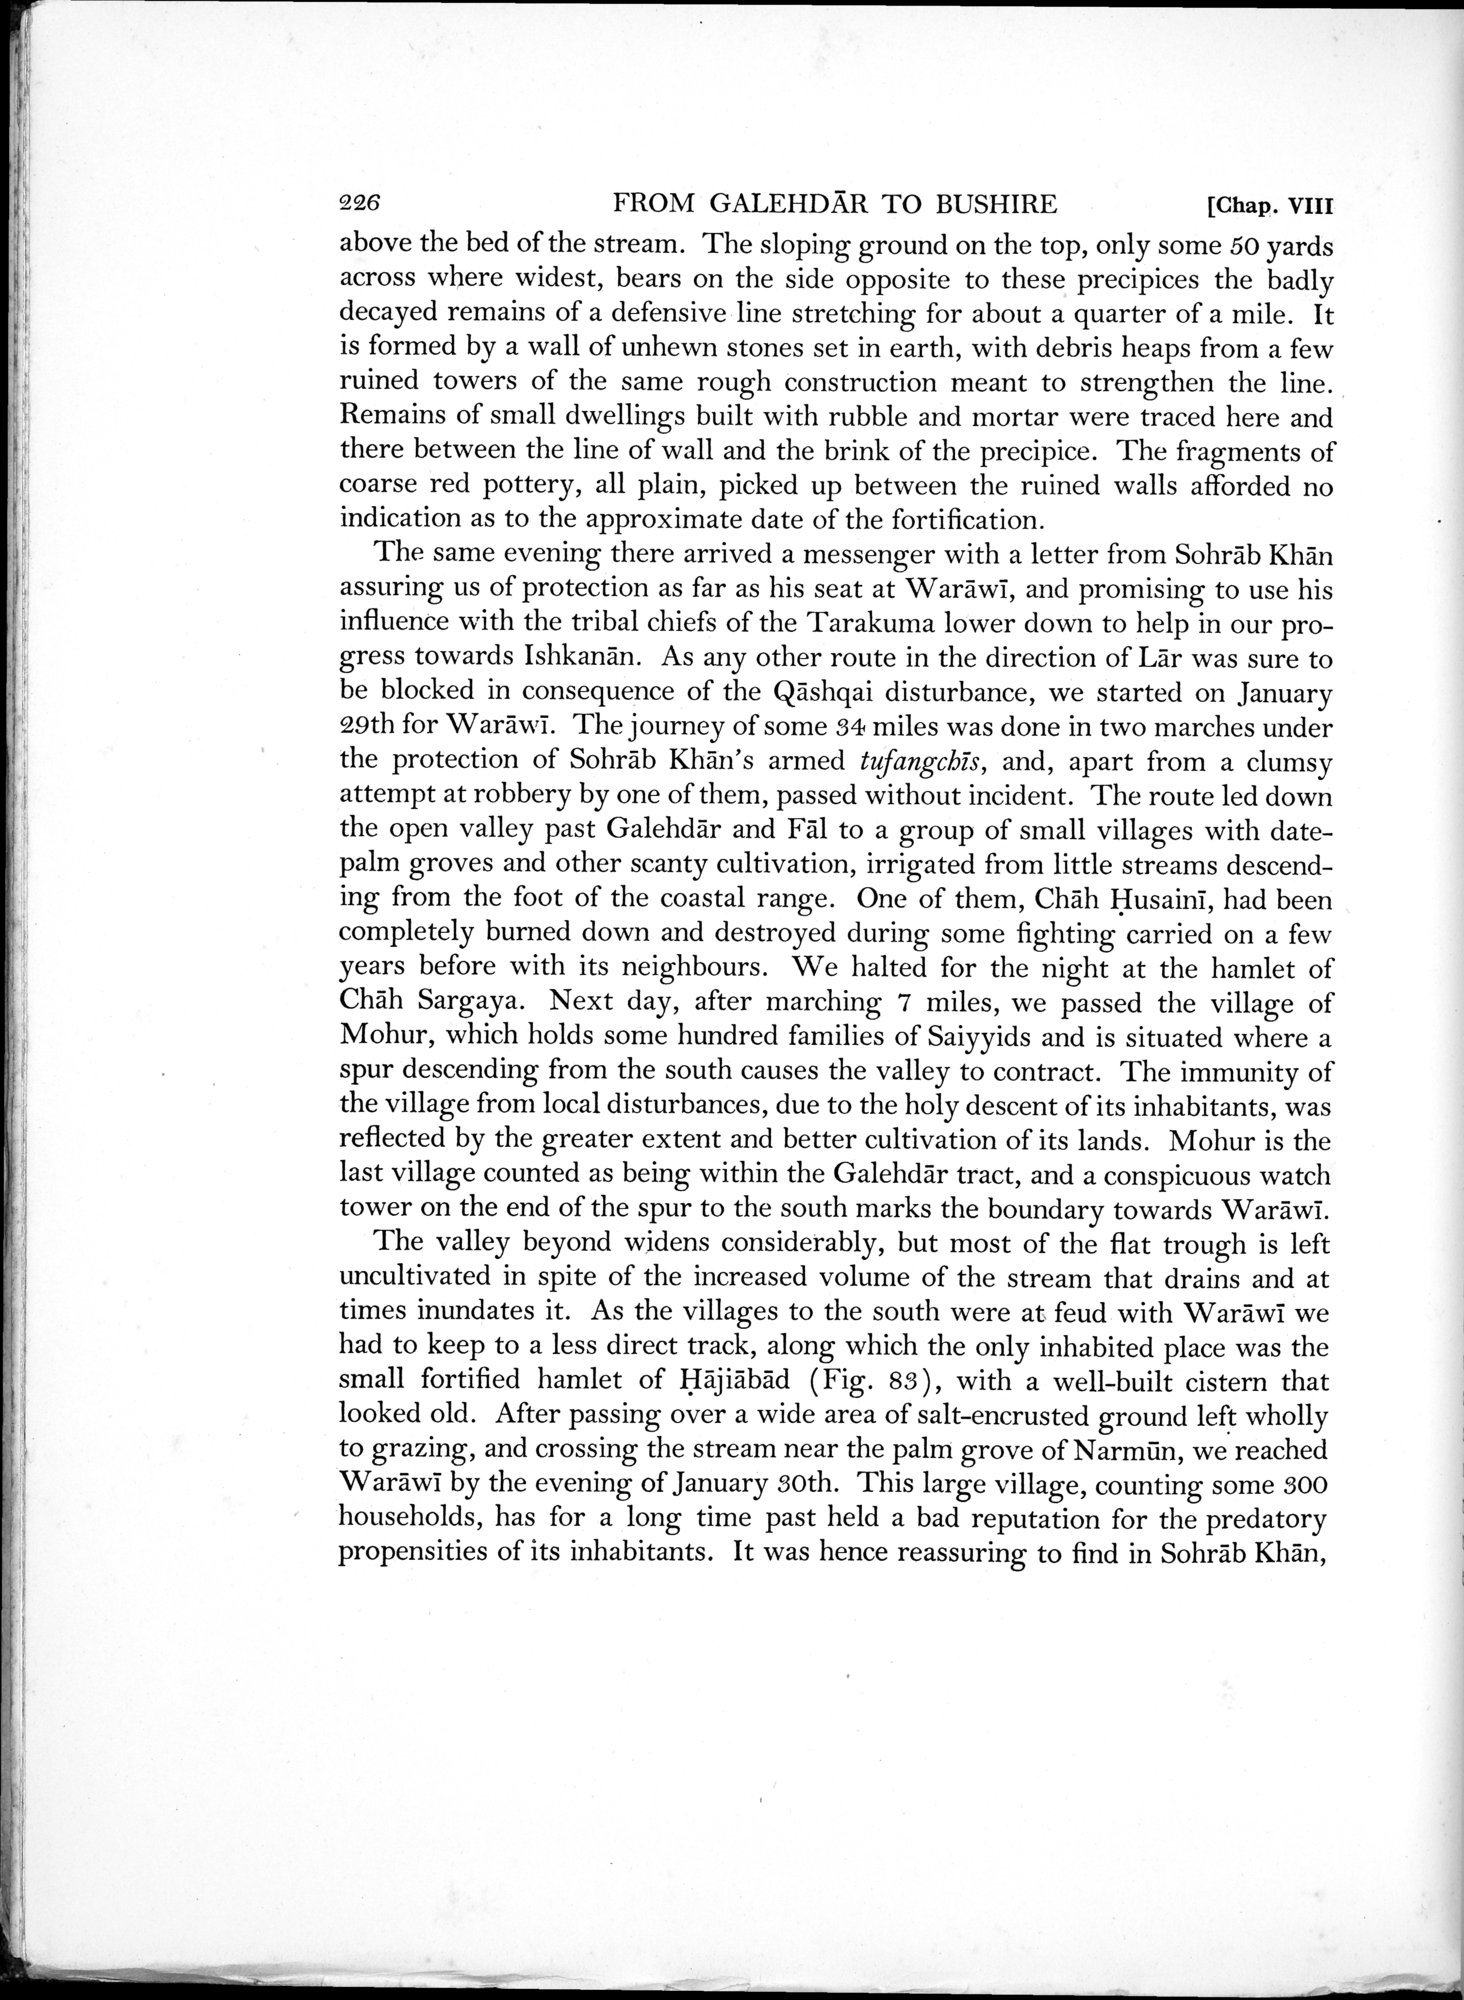 Archaeological Reconnaissances in North-Western India and South-Eastern Īrān : vol.1 / Page 308 (Grayscale High Resolution Image)